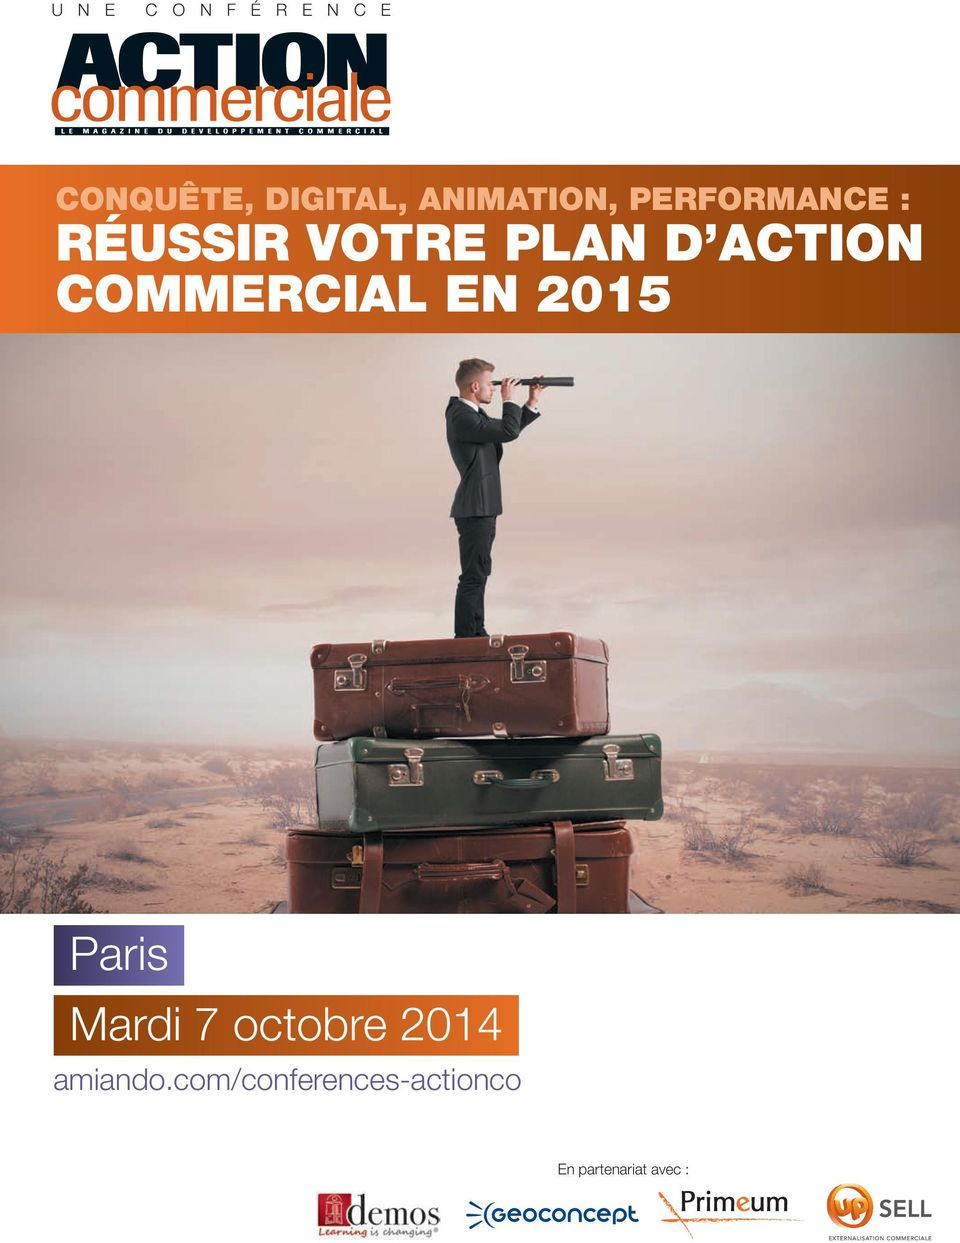 ACTION COMMERCIAL EN 2015 Paris Mardi 7 octobre